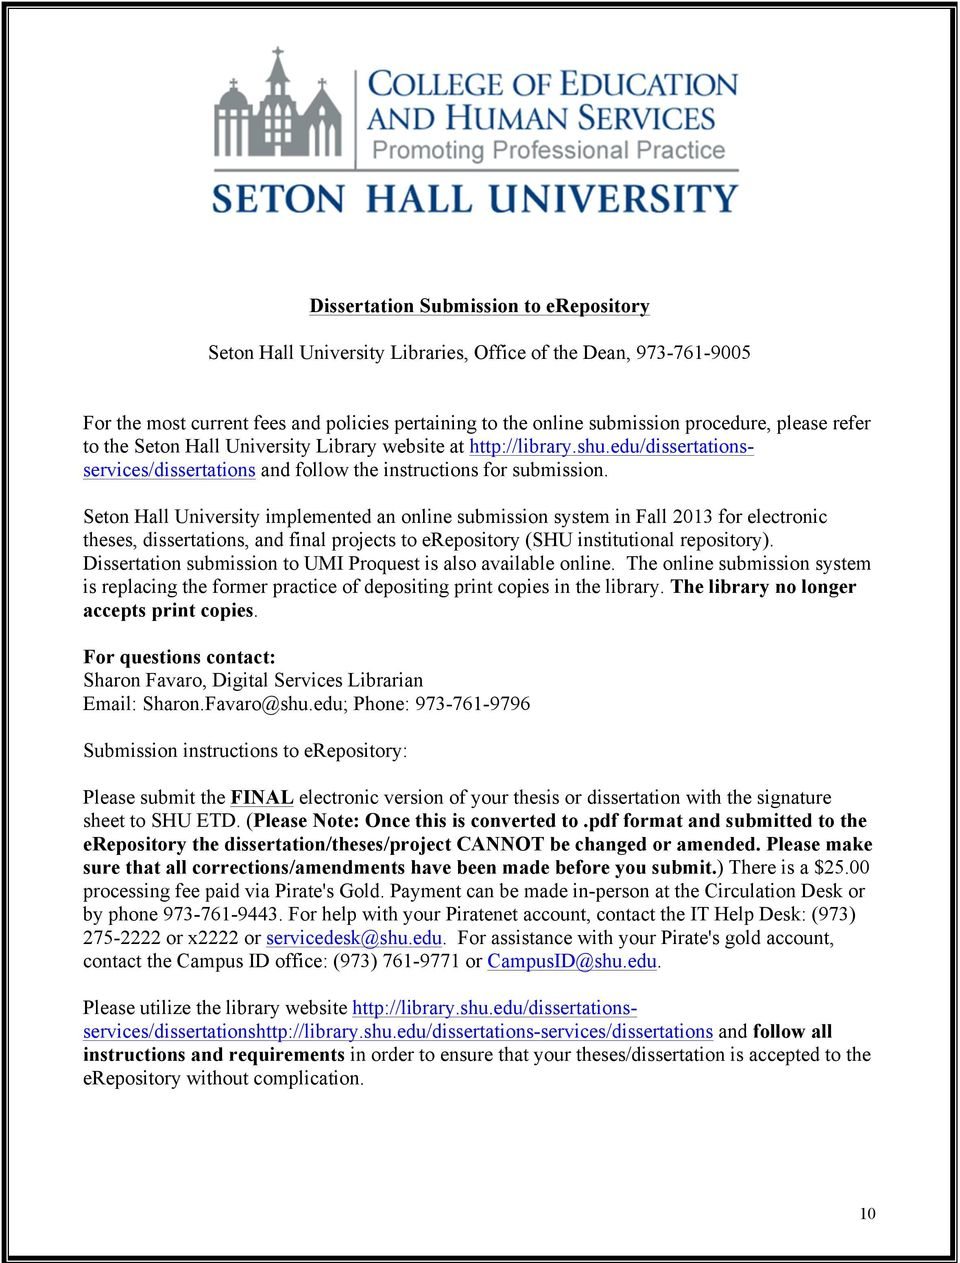 Seton Hall University implemented an online submission system in Fall 2013 for electronic theses, dissertations, and final projects to erepository (SHU institutional repository).